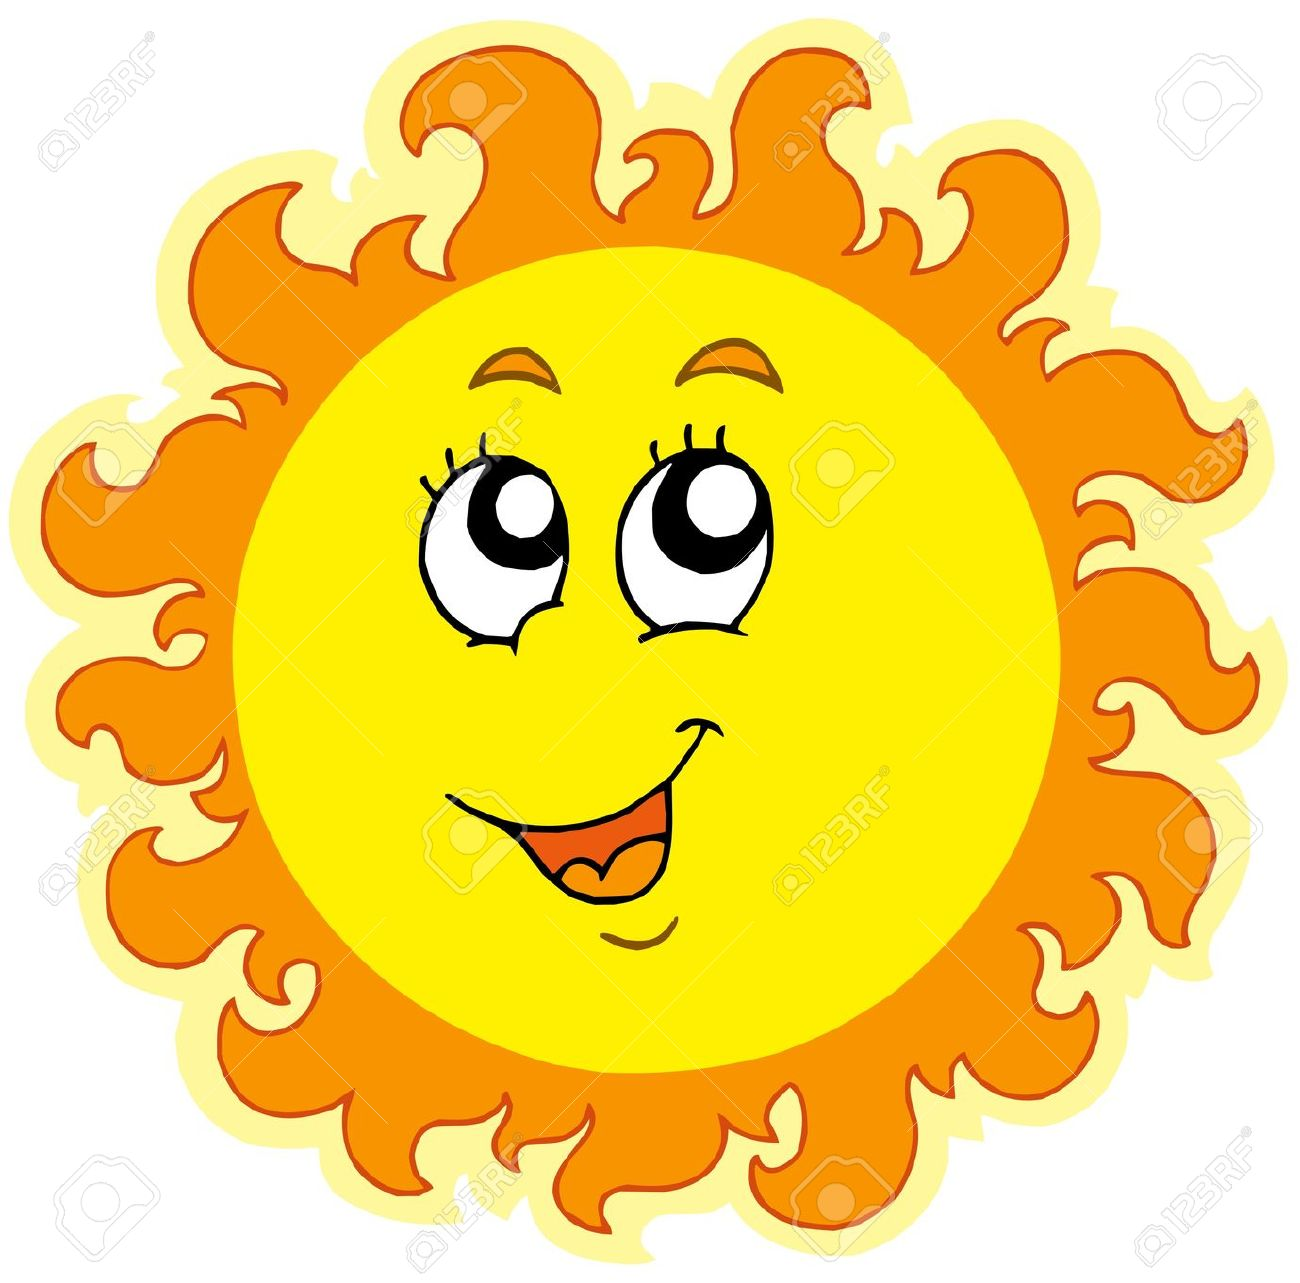 hight resolution of clipart sunshine stock photos pictures royalty free clipart